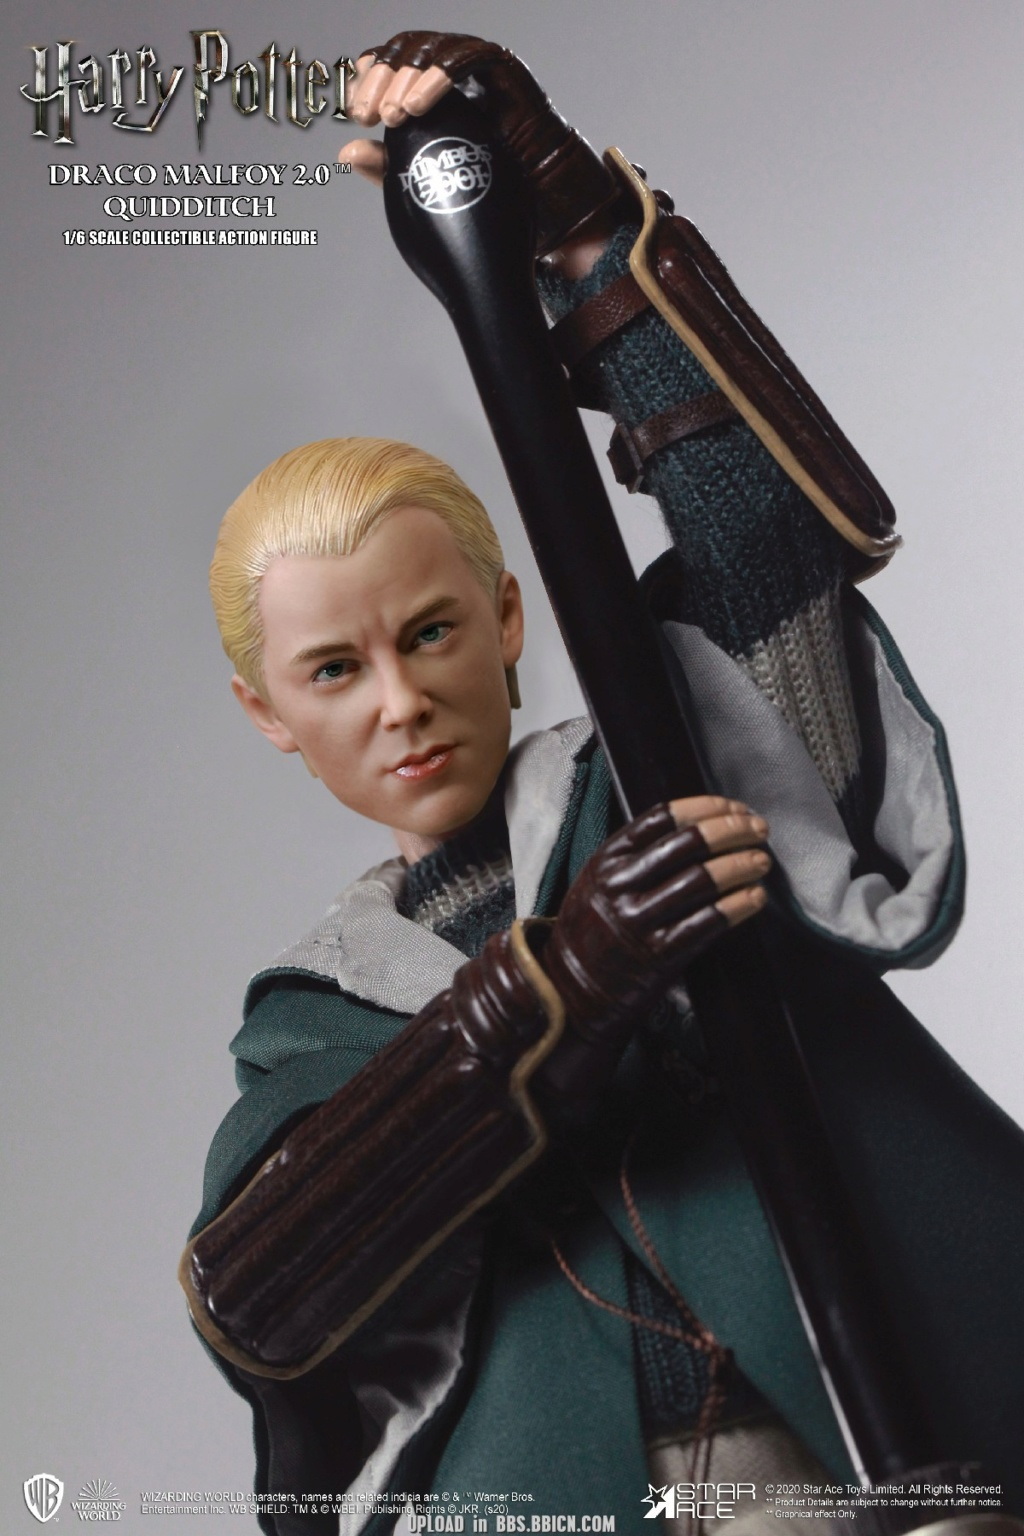 DracoMalfoy2 - NEW PRODUCT: STAR ACE Toys: 1/6 Harry Potter + Malfoy 2.0 Playing Set & Single & Uniform Edition 17064110